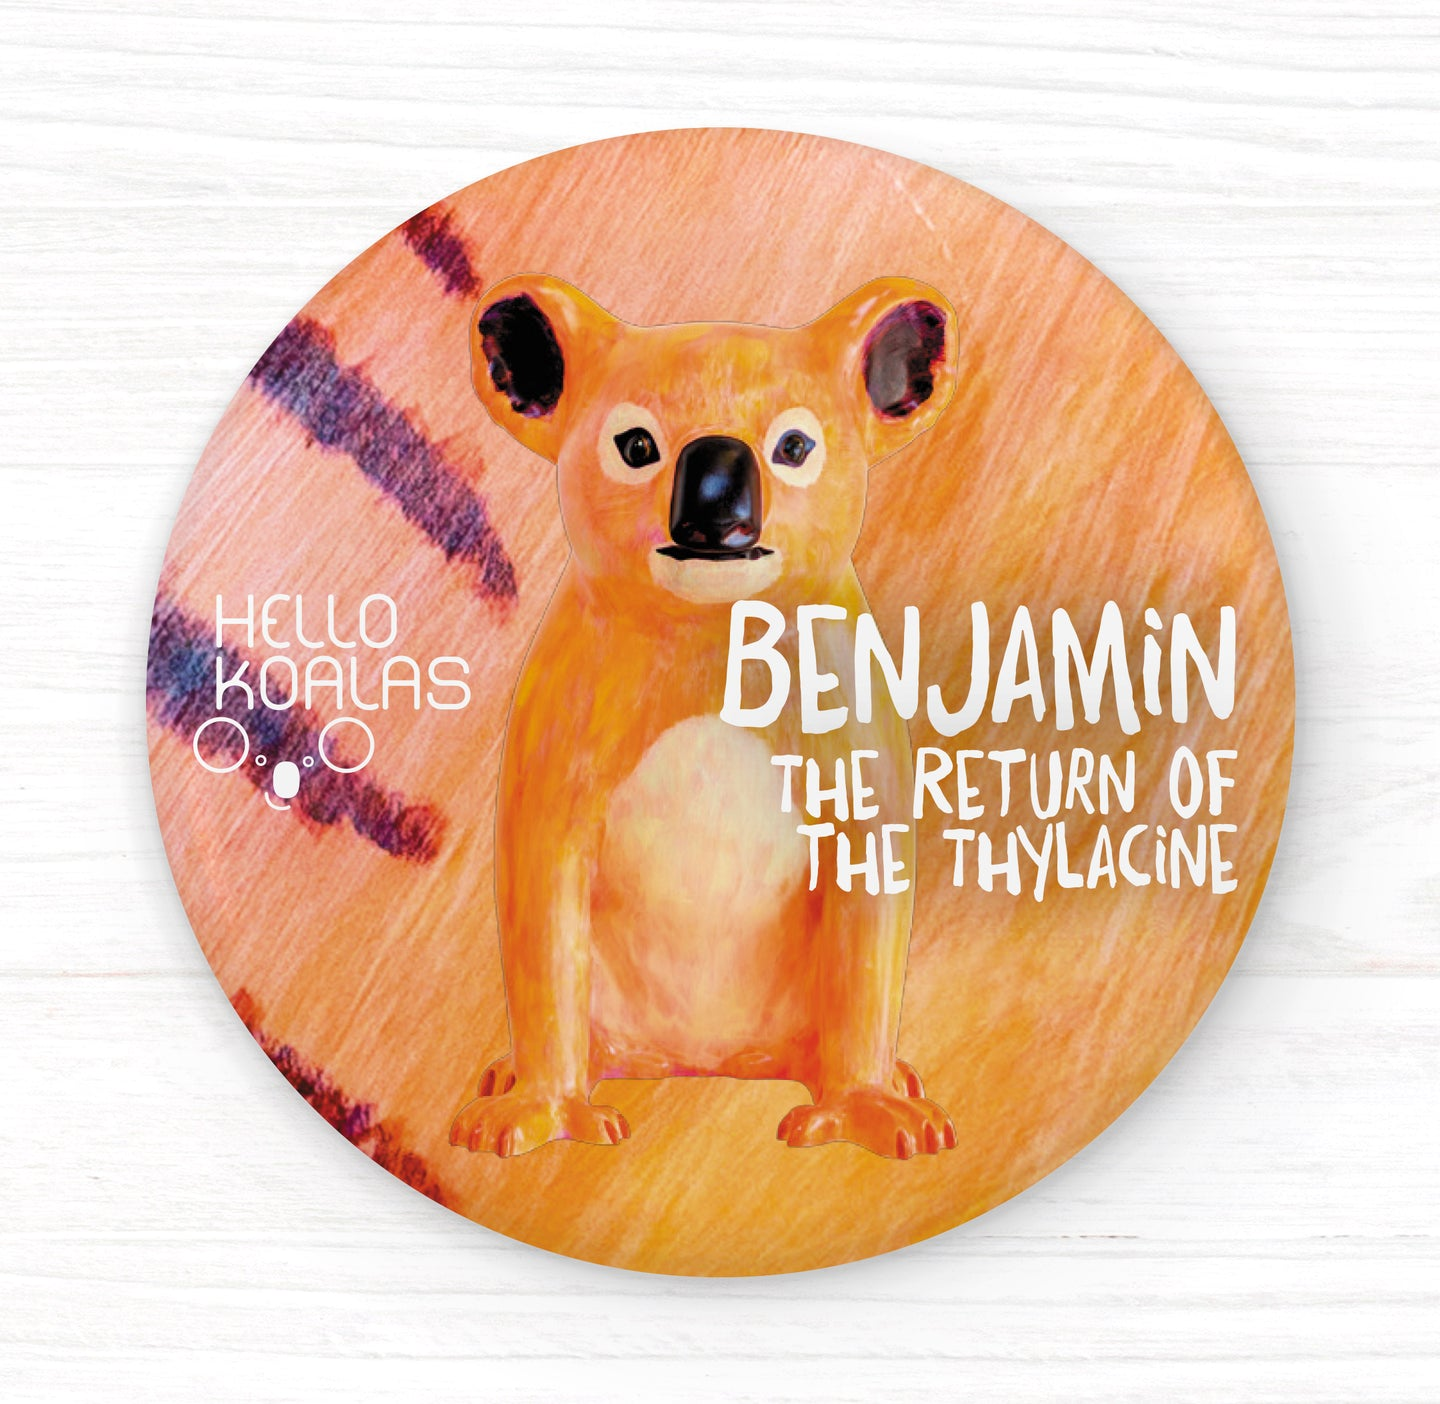 Hello Koalas Benjamin The Return of the Thylacine Badge